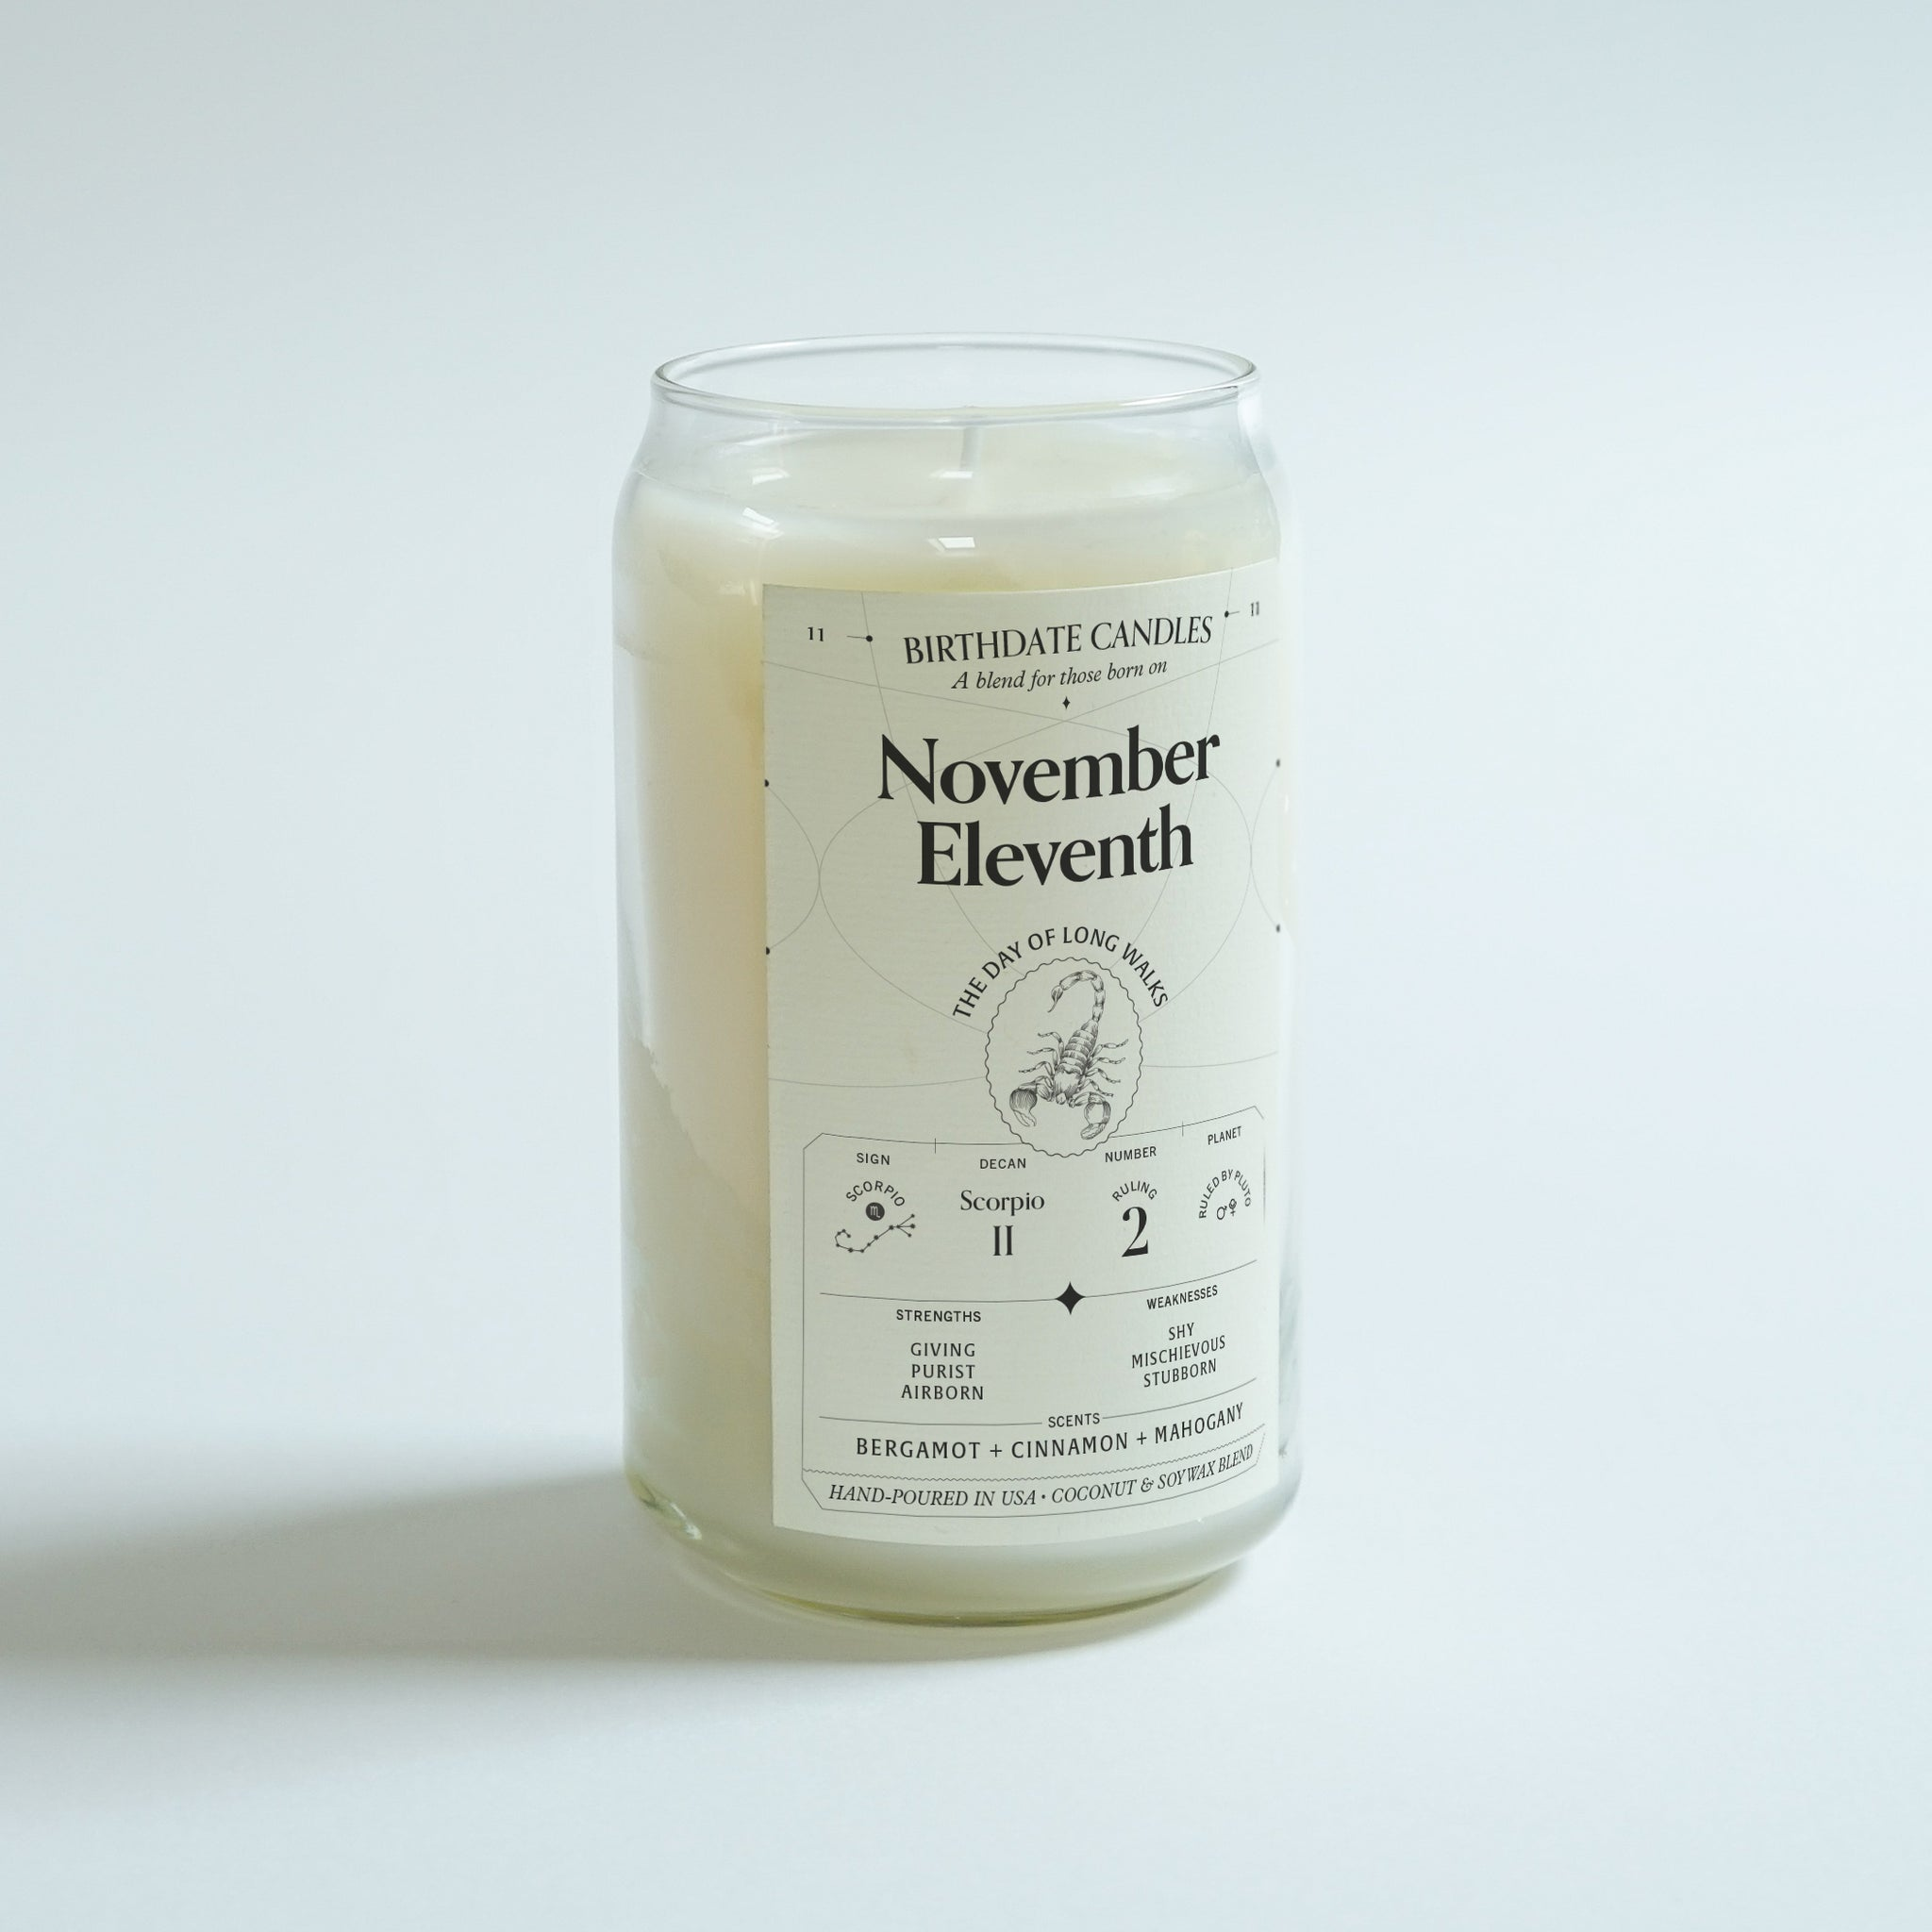 The November Eleventh Birthday Candle